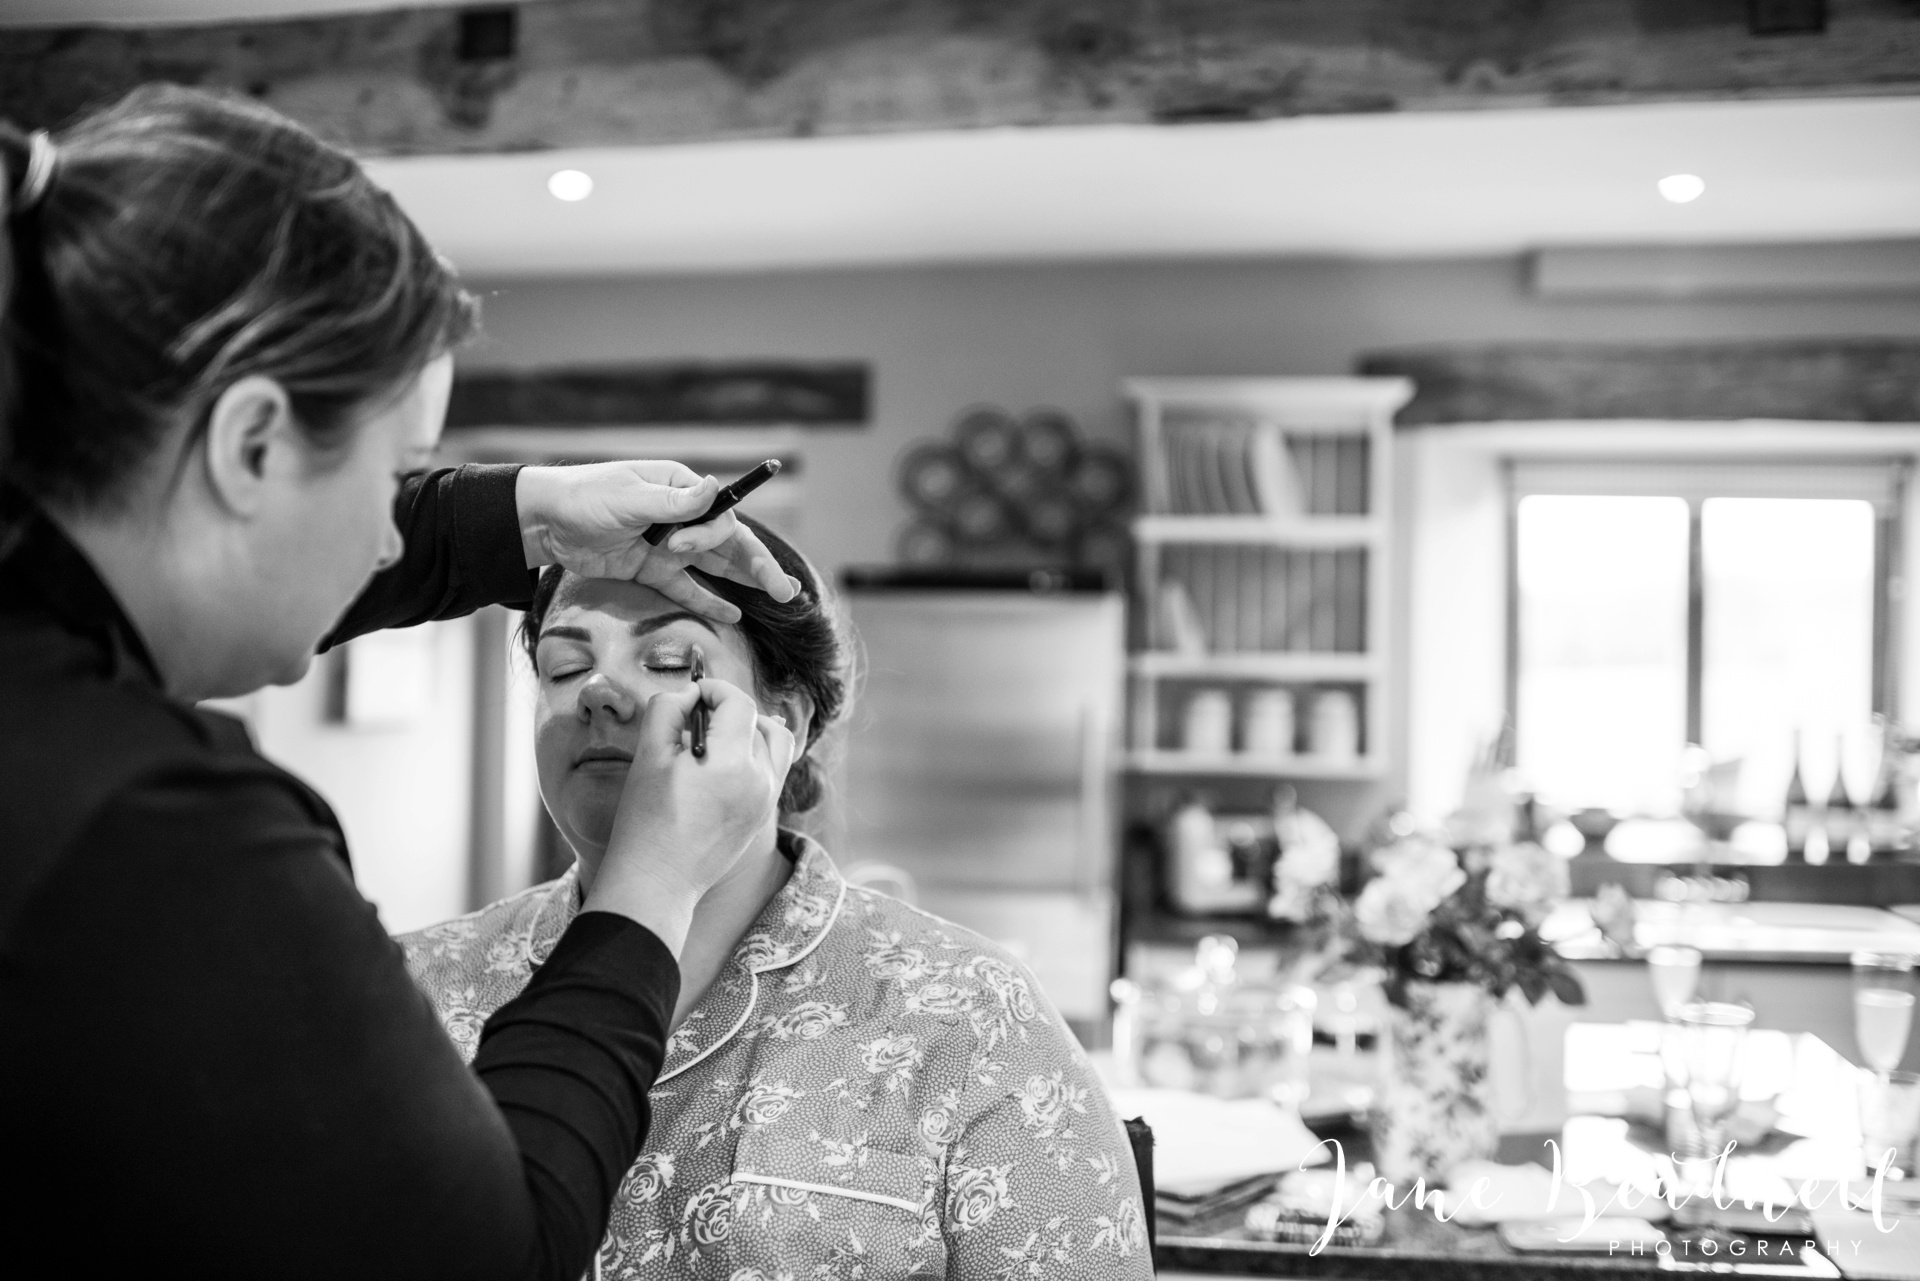 Cracoe Village Hall Wedding Photography by Jane Beadnell Photography fine art wedding photographer Yorkshire_0001